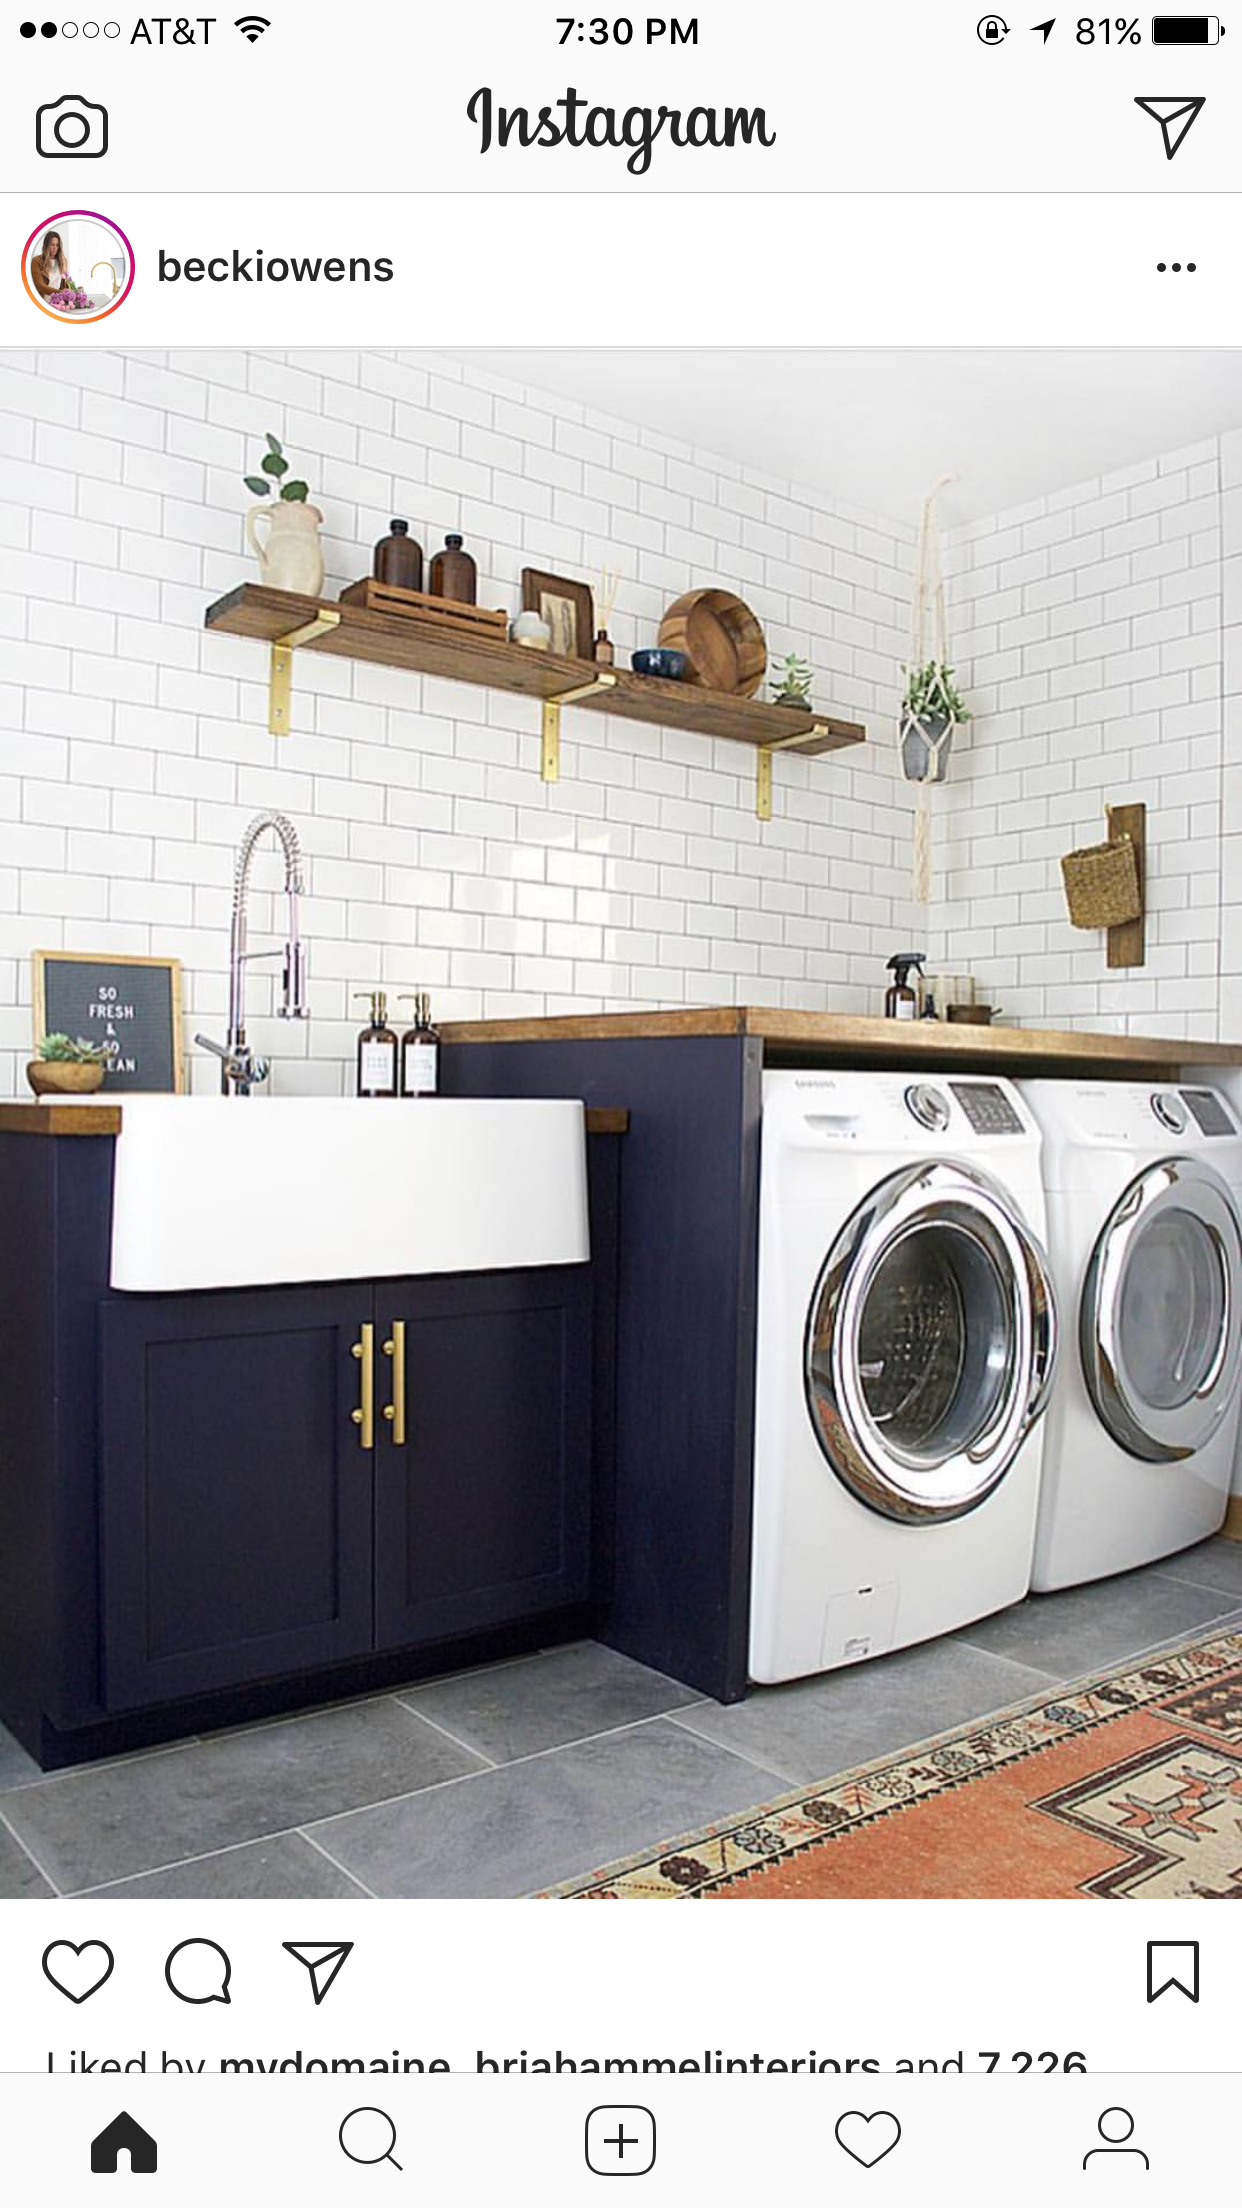 Laundry Room Countertop Material Pin By Bhargavi Thaduri On Future Home Updates In 2019 Pinterest